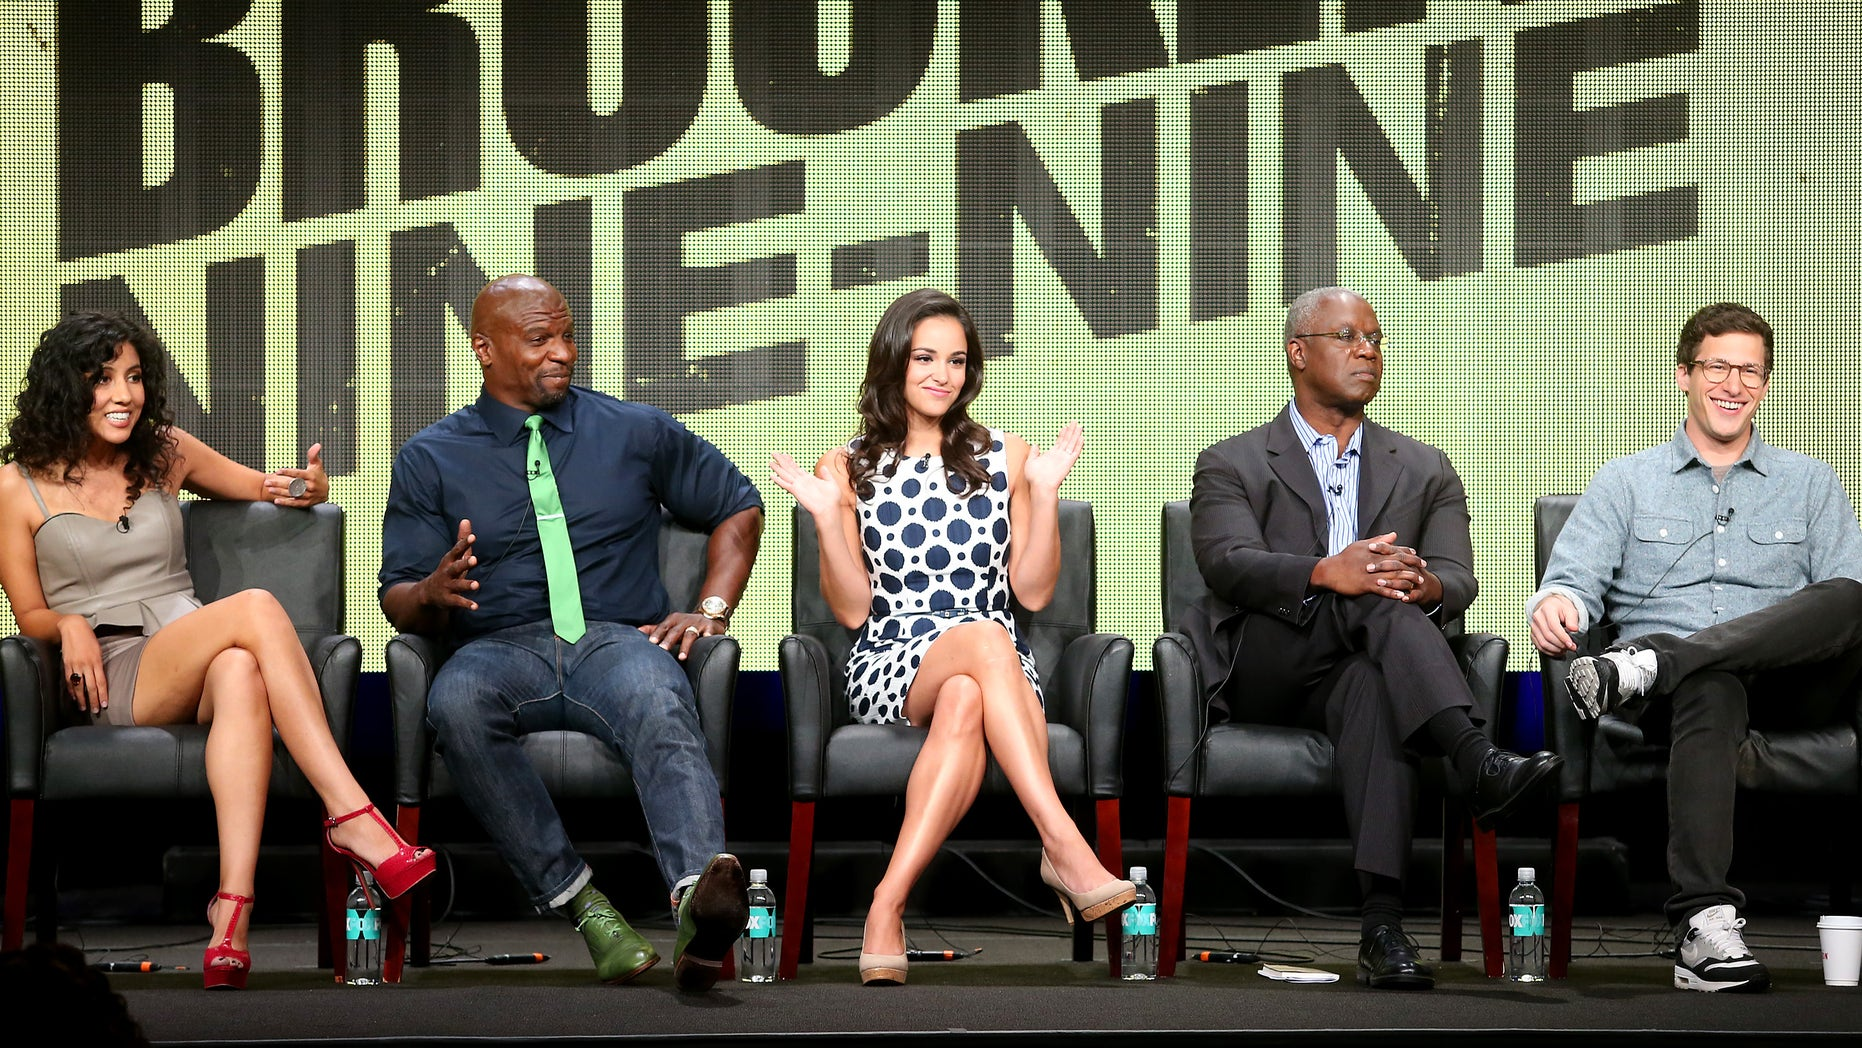 BEVERLY HILLS, CA - AUGUST 01:  (L-R) Actors Stephanie Beatriz, Terry Crews, Melissa Fumero, Andre Braugher, and Andy Samberg speak onstage during the Brooklyn NINE-NINE panel discussion at the FOX portion of the 2013 Summer Television Critics Association tour - Day 9 at The Beverly Hilton Hotel  on August 1, 2013 in Beverly Hills, California.  (Photo by Frederick M. Brown/Getty Images)